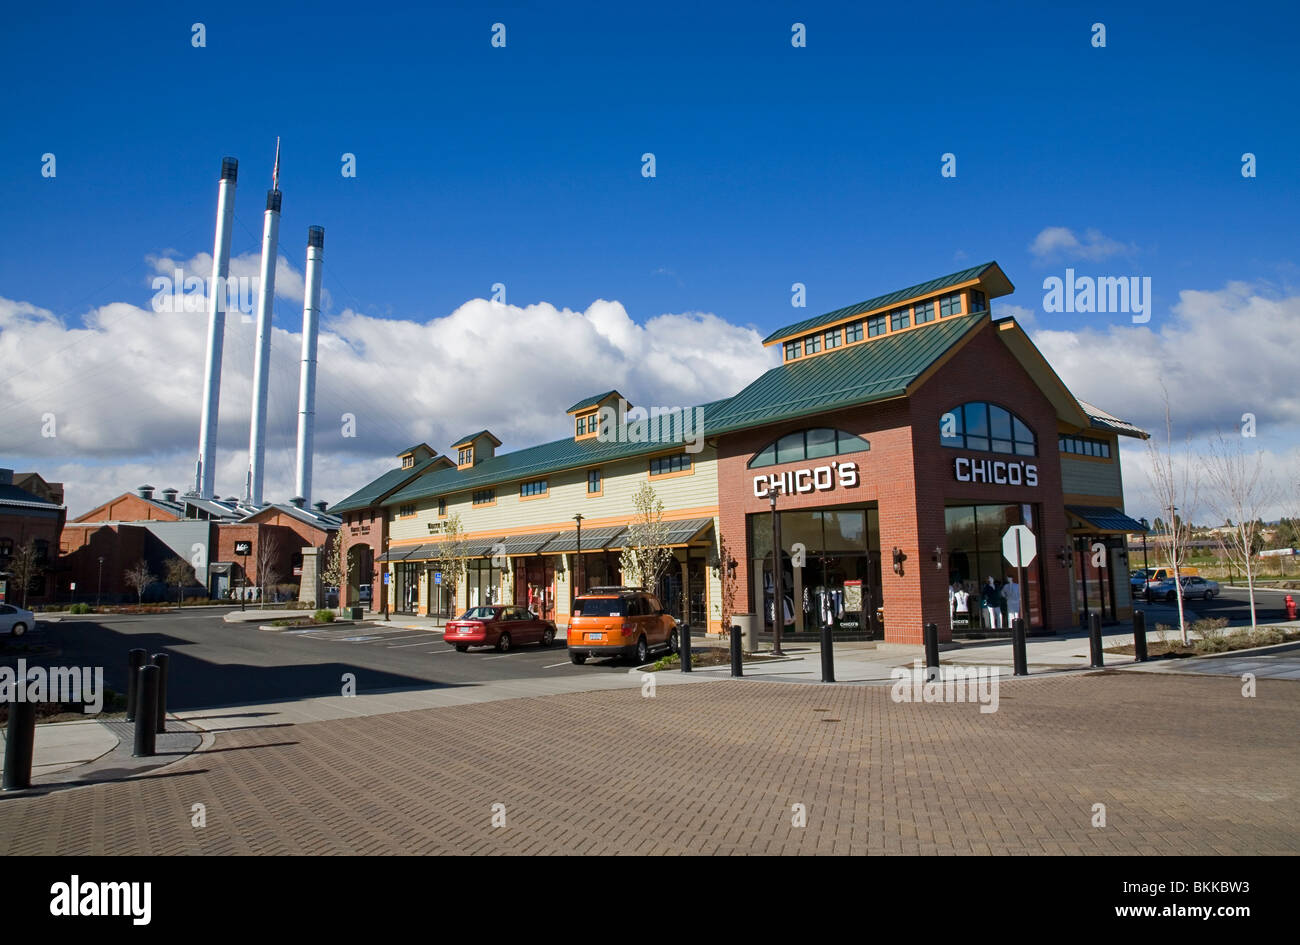 The Old Mill, a large upscale shopping center mall in Bend, Oregon - Stock Image